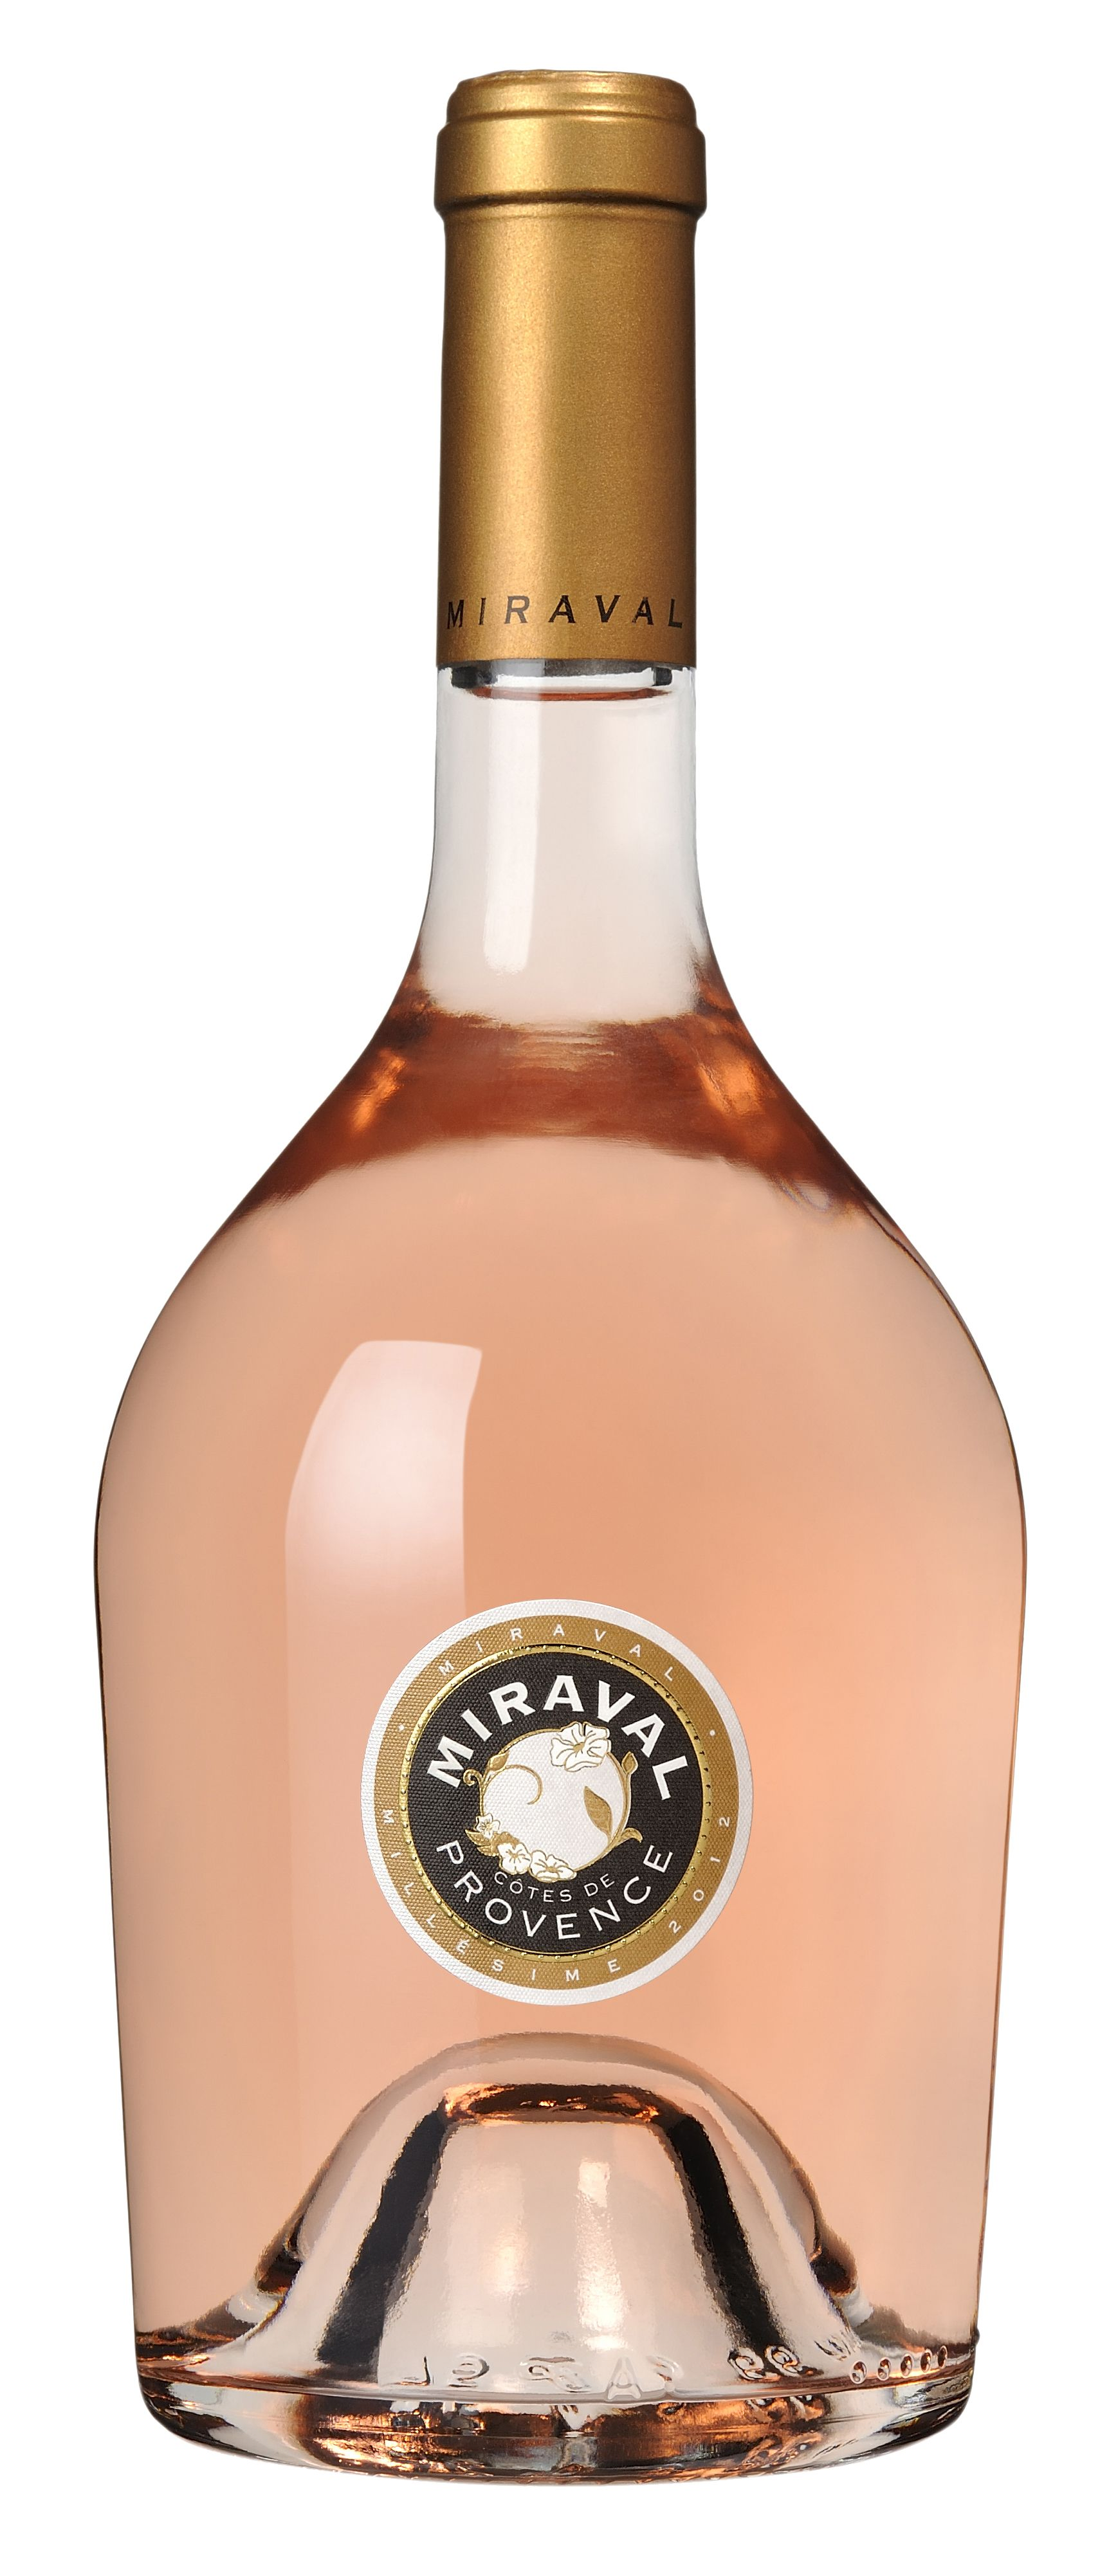 Miraval Provence Rosé, currently available only at Whole Foods Markets at about $25, is no celebrity stunt. In fact, it is one … | Rose wine, Wines, Wine cocktails